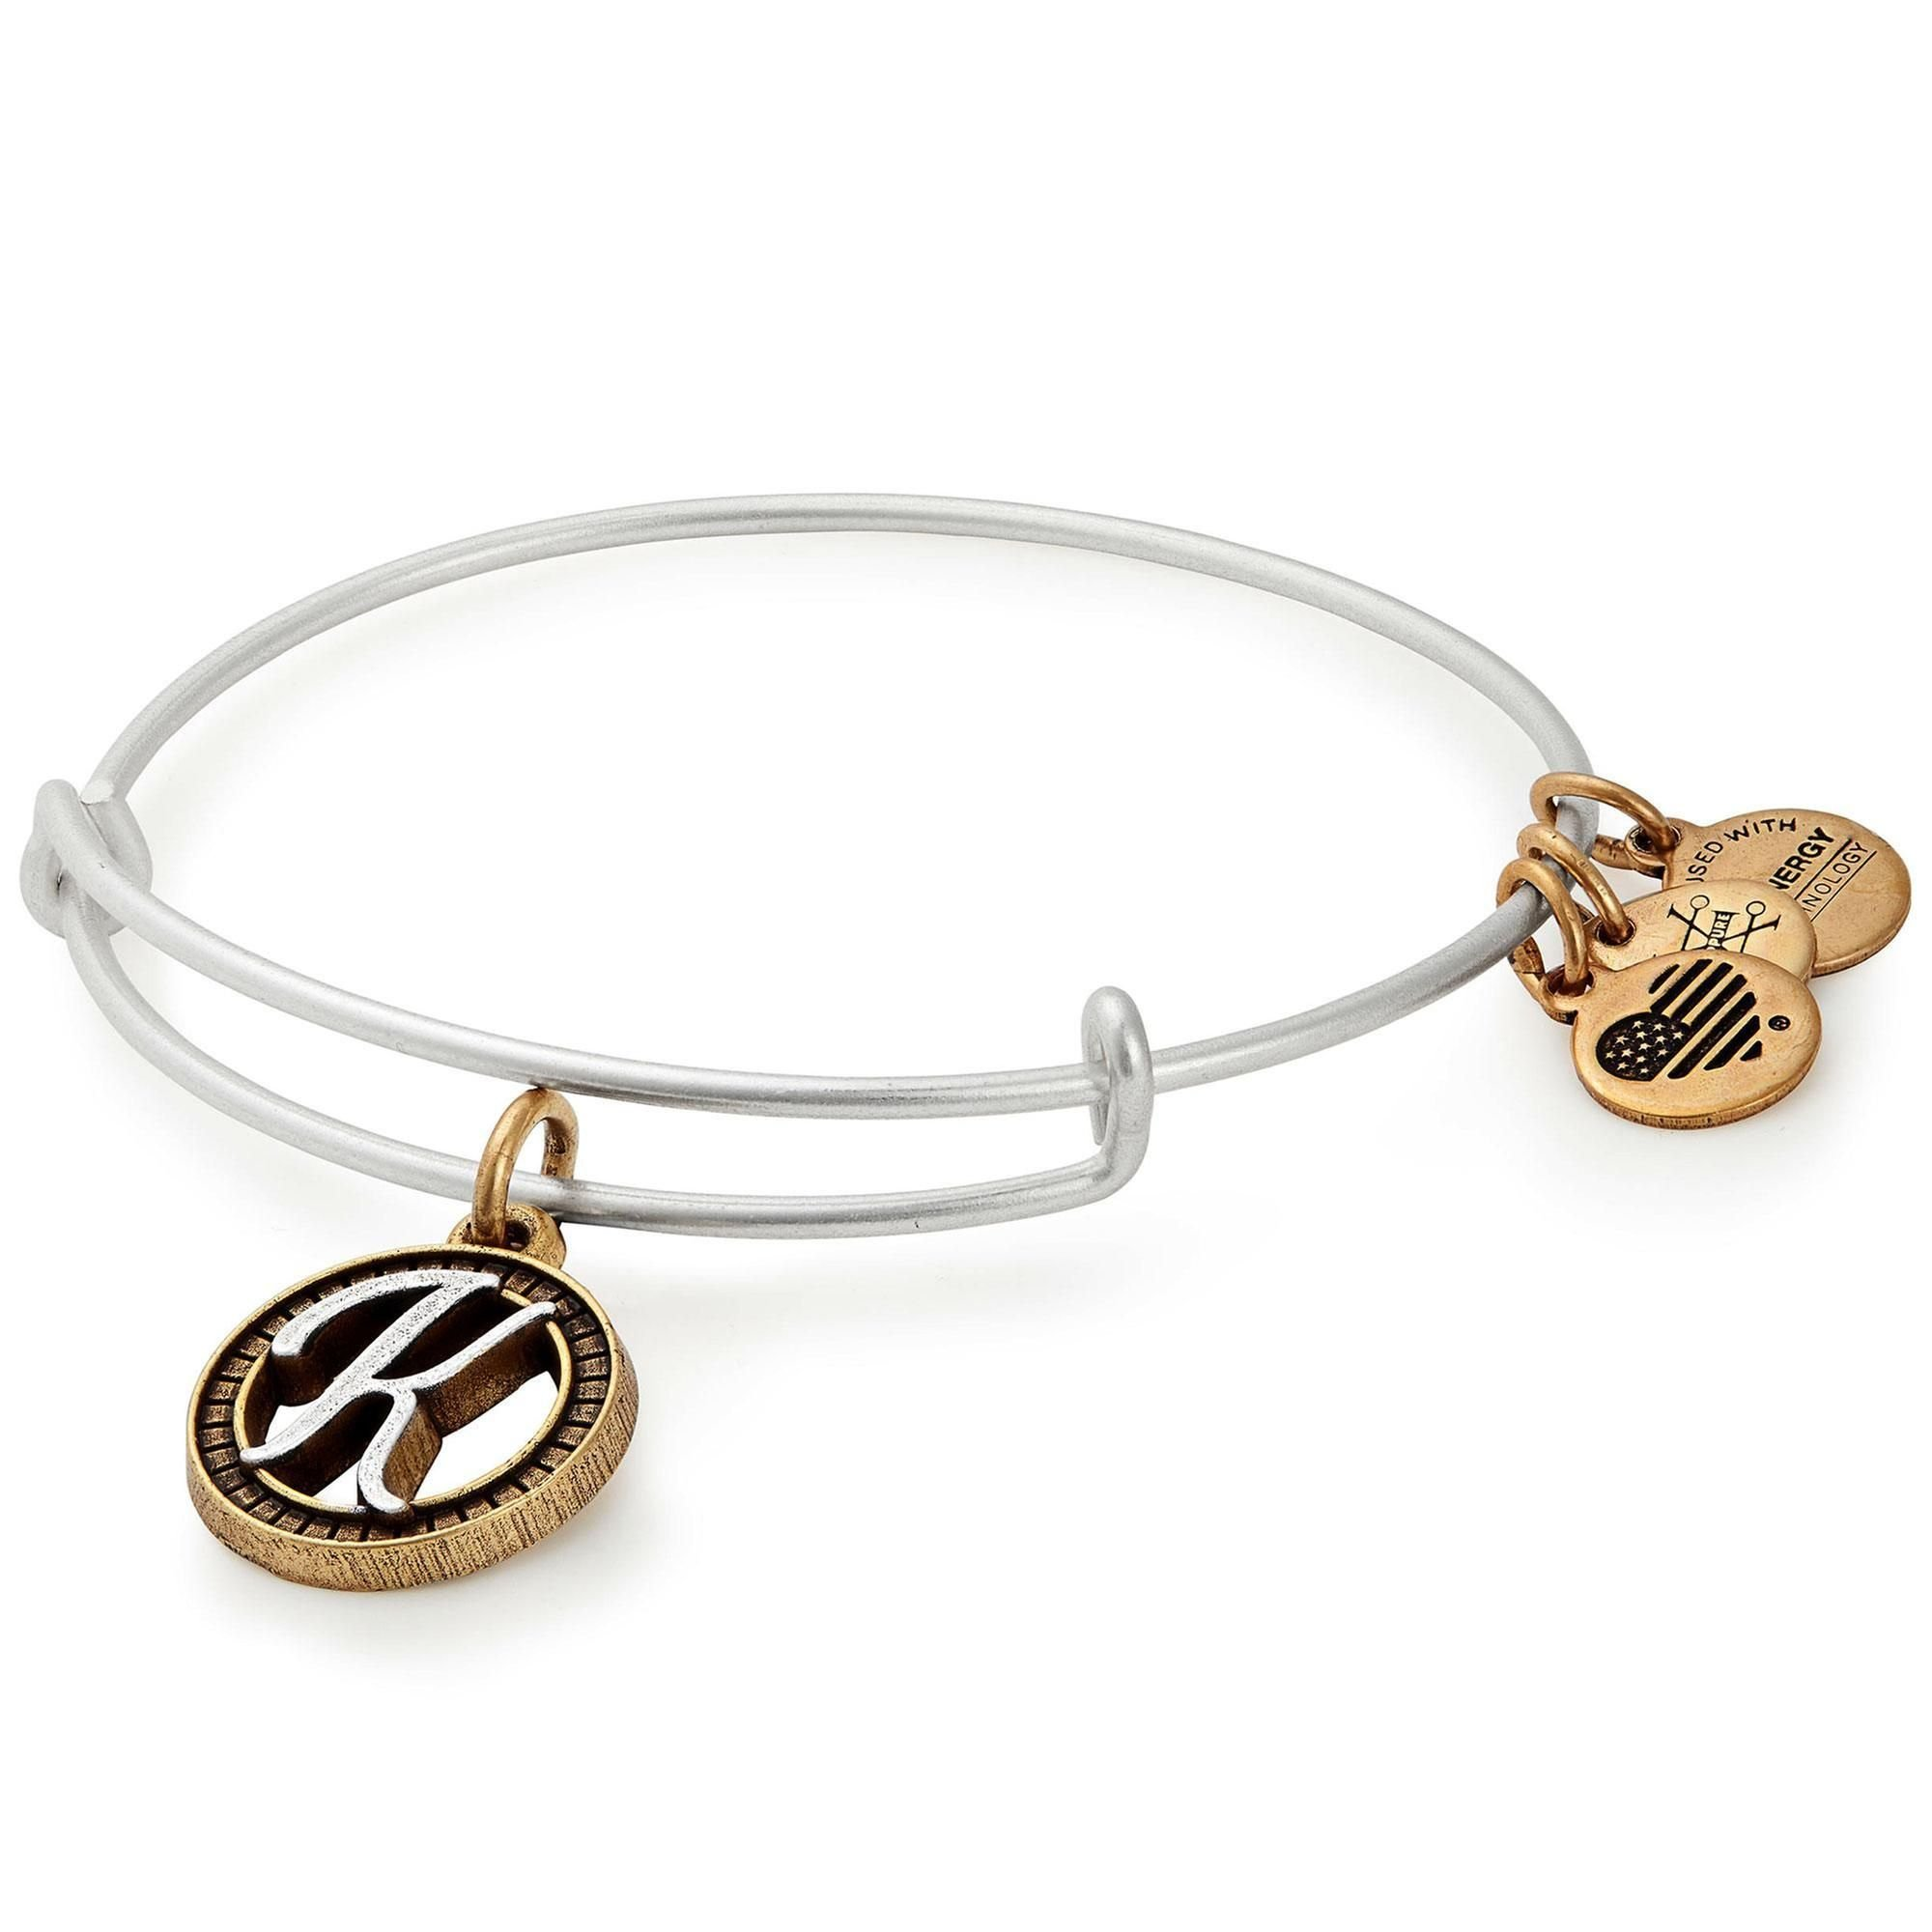 Alex and Ani Women's Initial K II Bangle Two Tone Bracelet, Rafaelian Silver